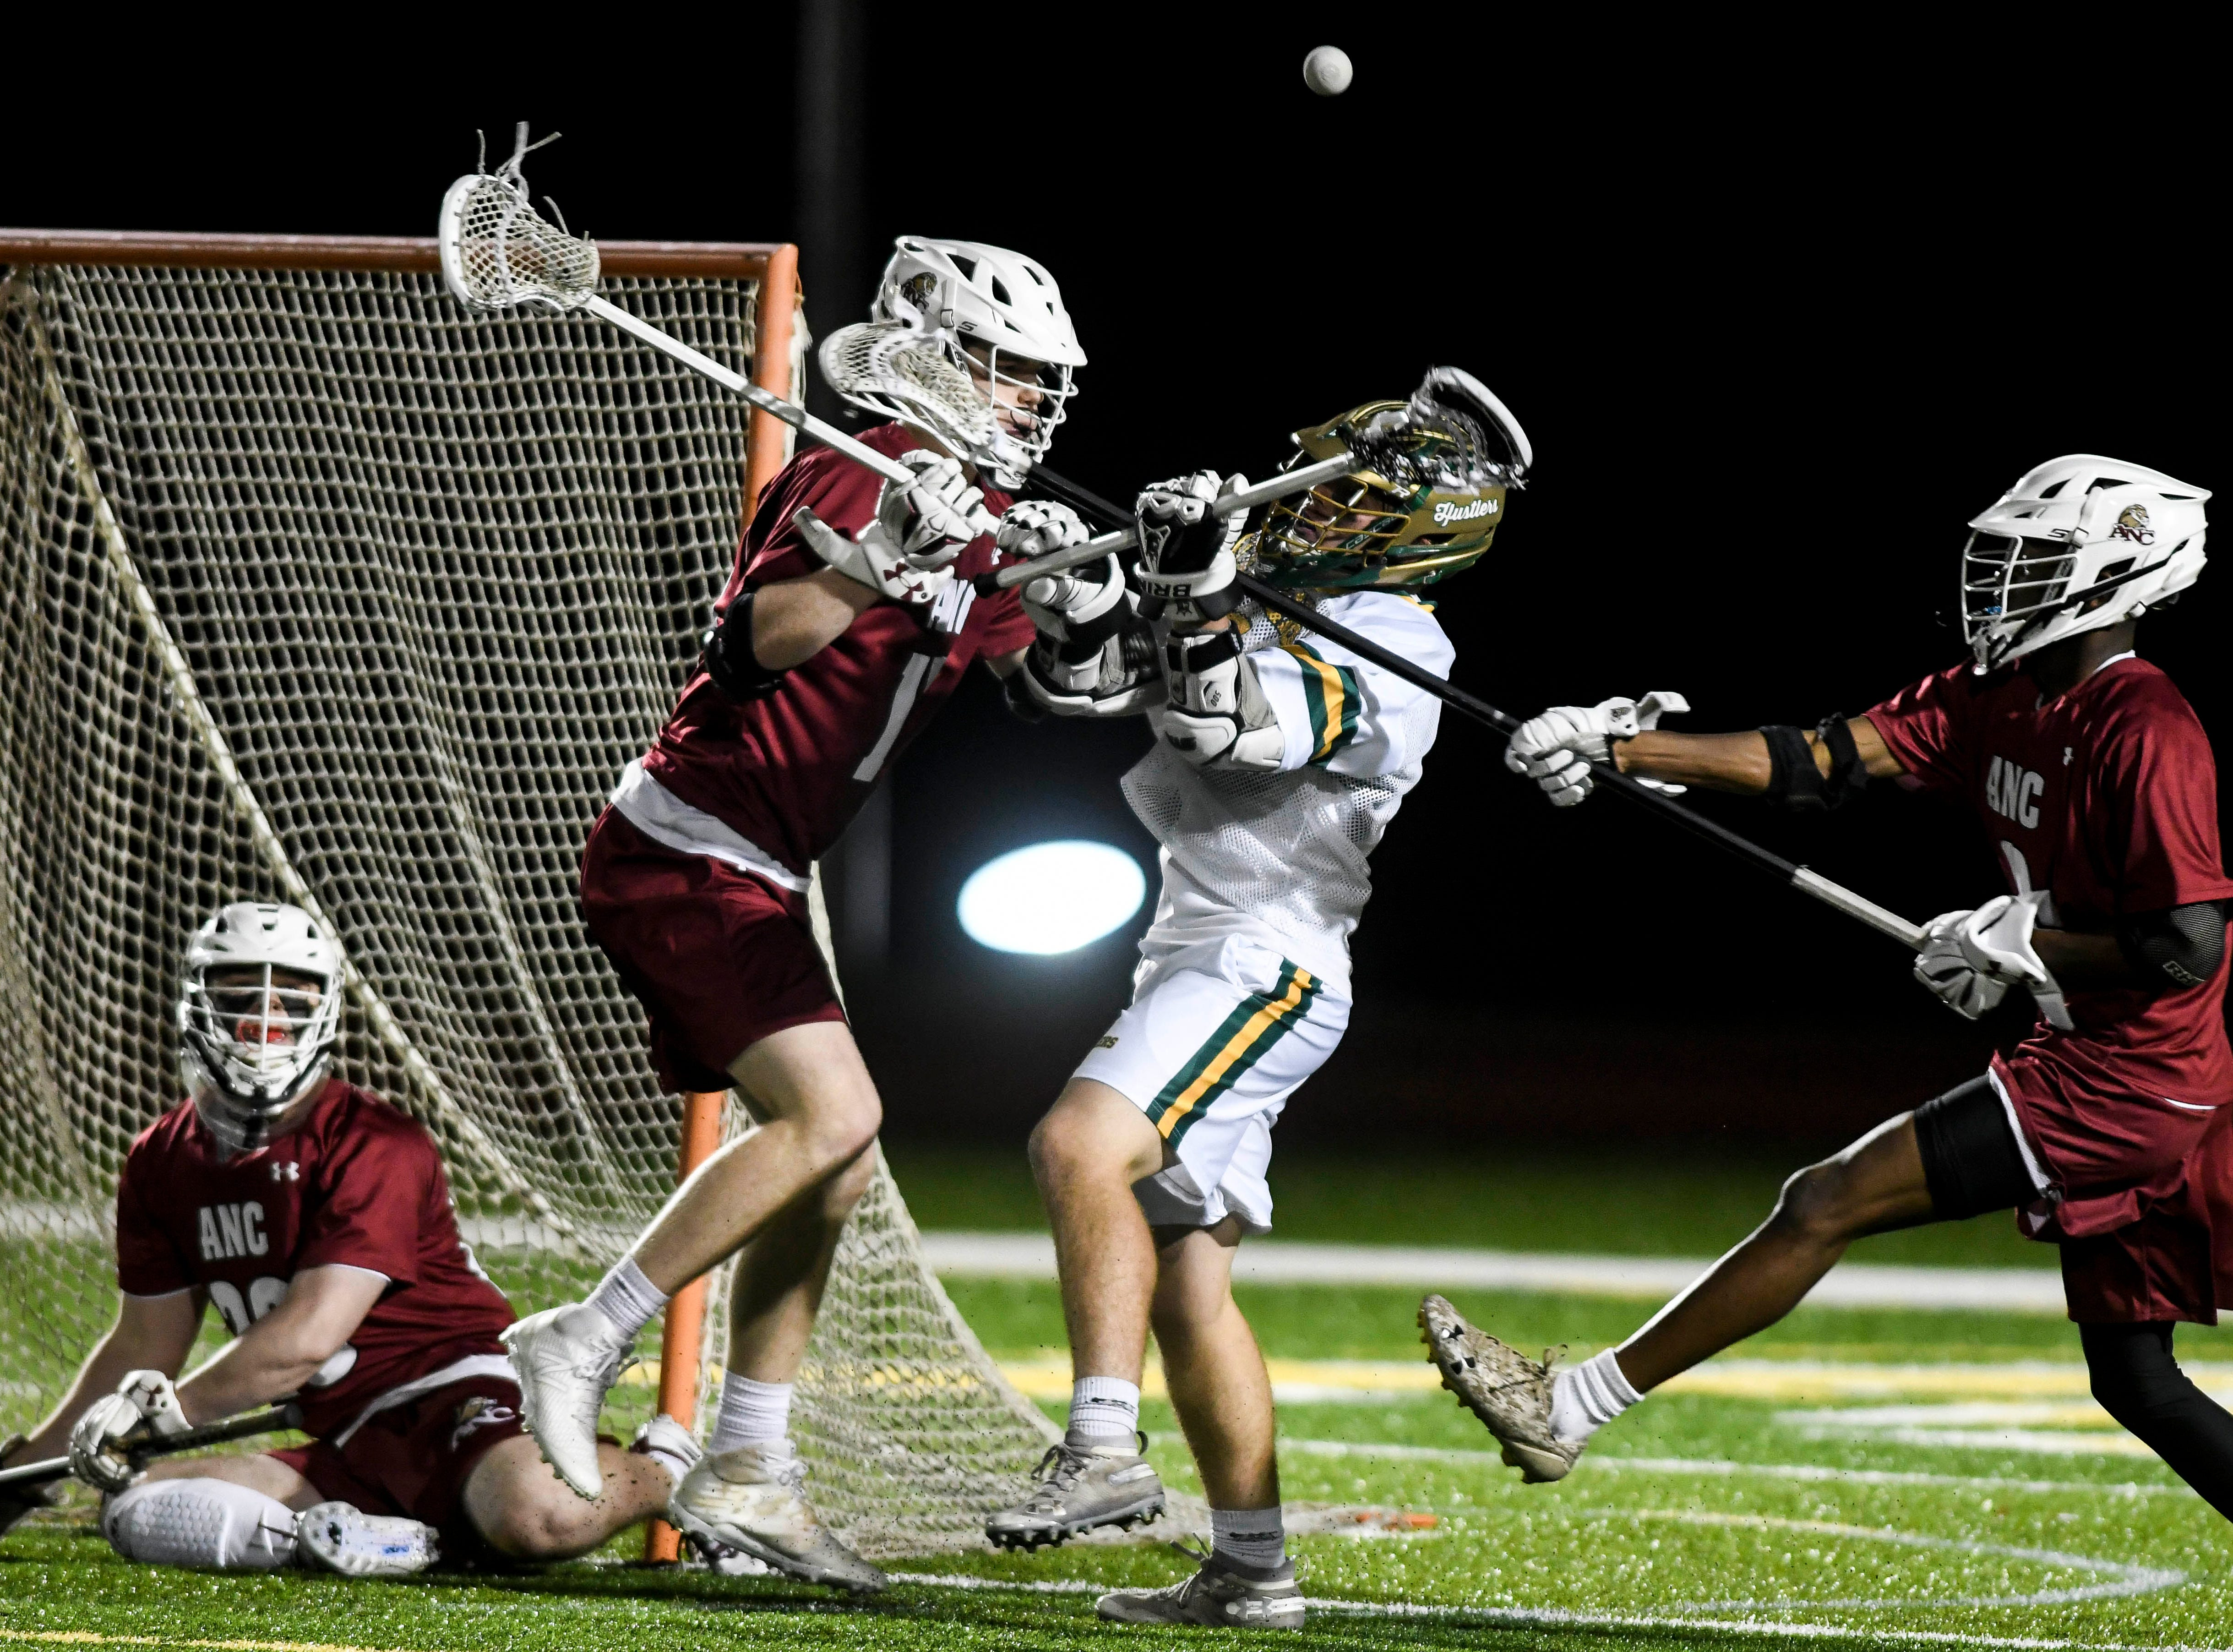 Sam Johnson of Melbourne Central Catholic loses the ball as he approaches the Lions goal during Tuesday's game in Melbourne.